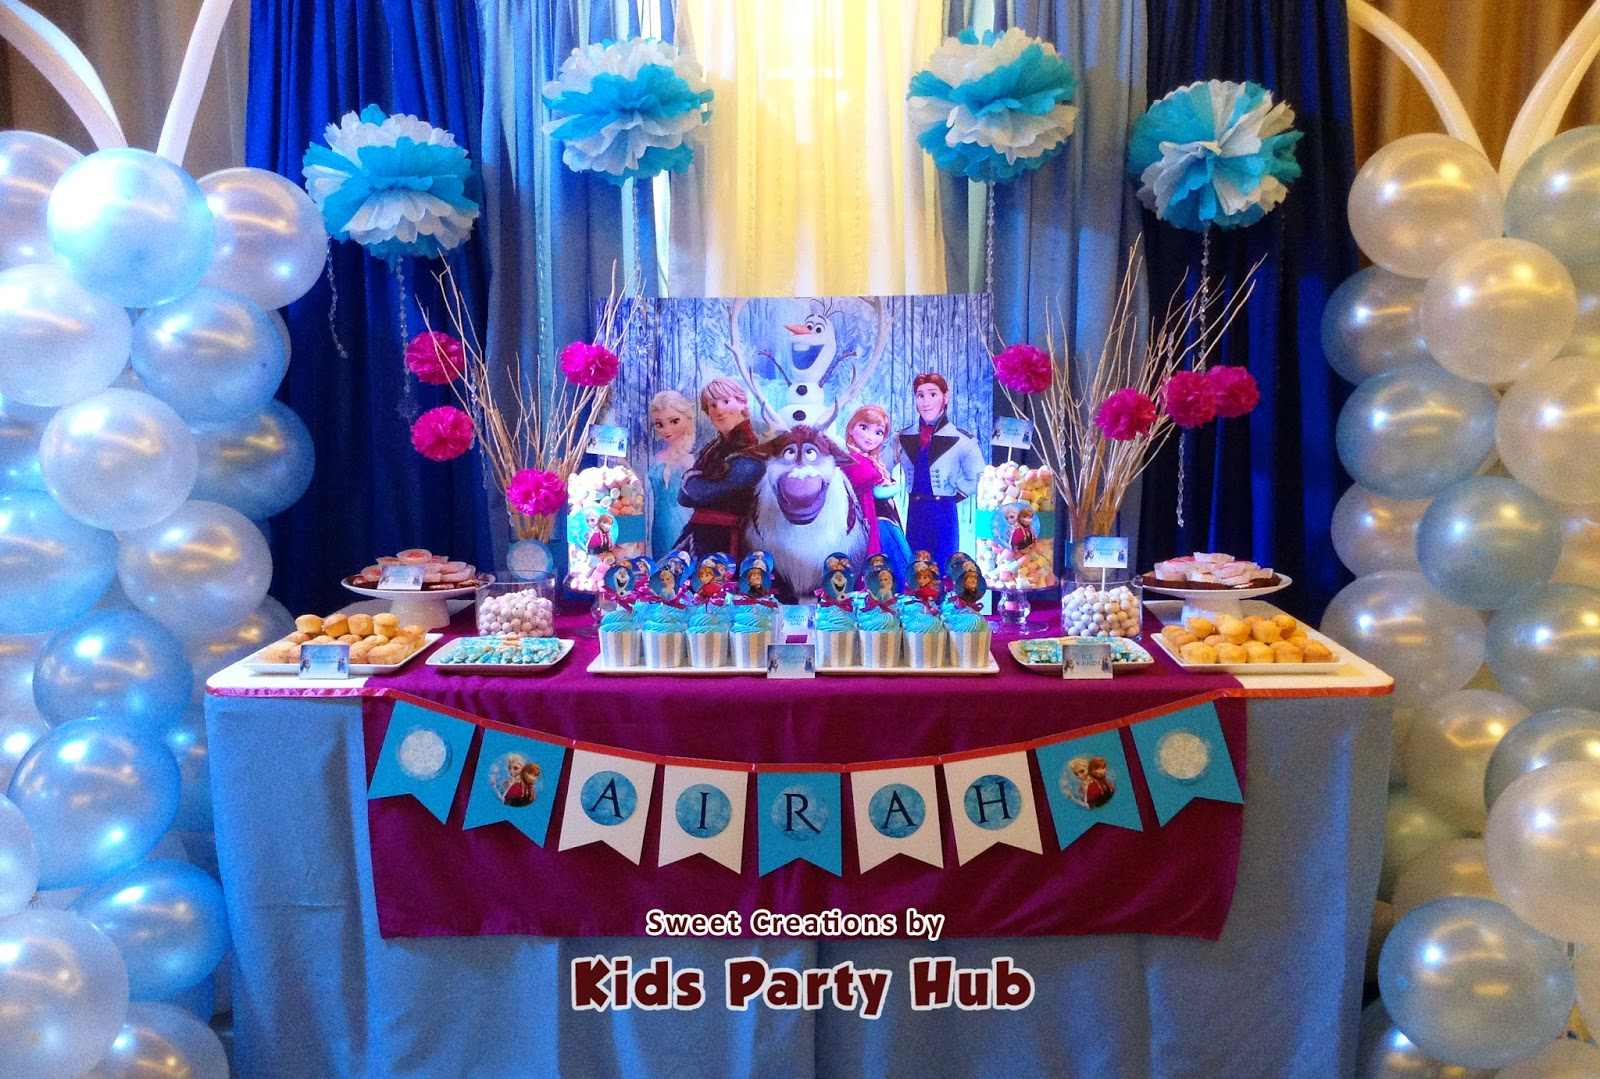 Kids party hub disney frozen themed party airah 39 s 7th for Decoration goods